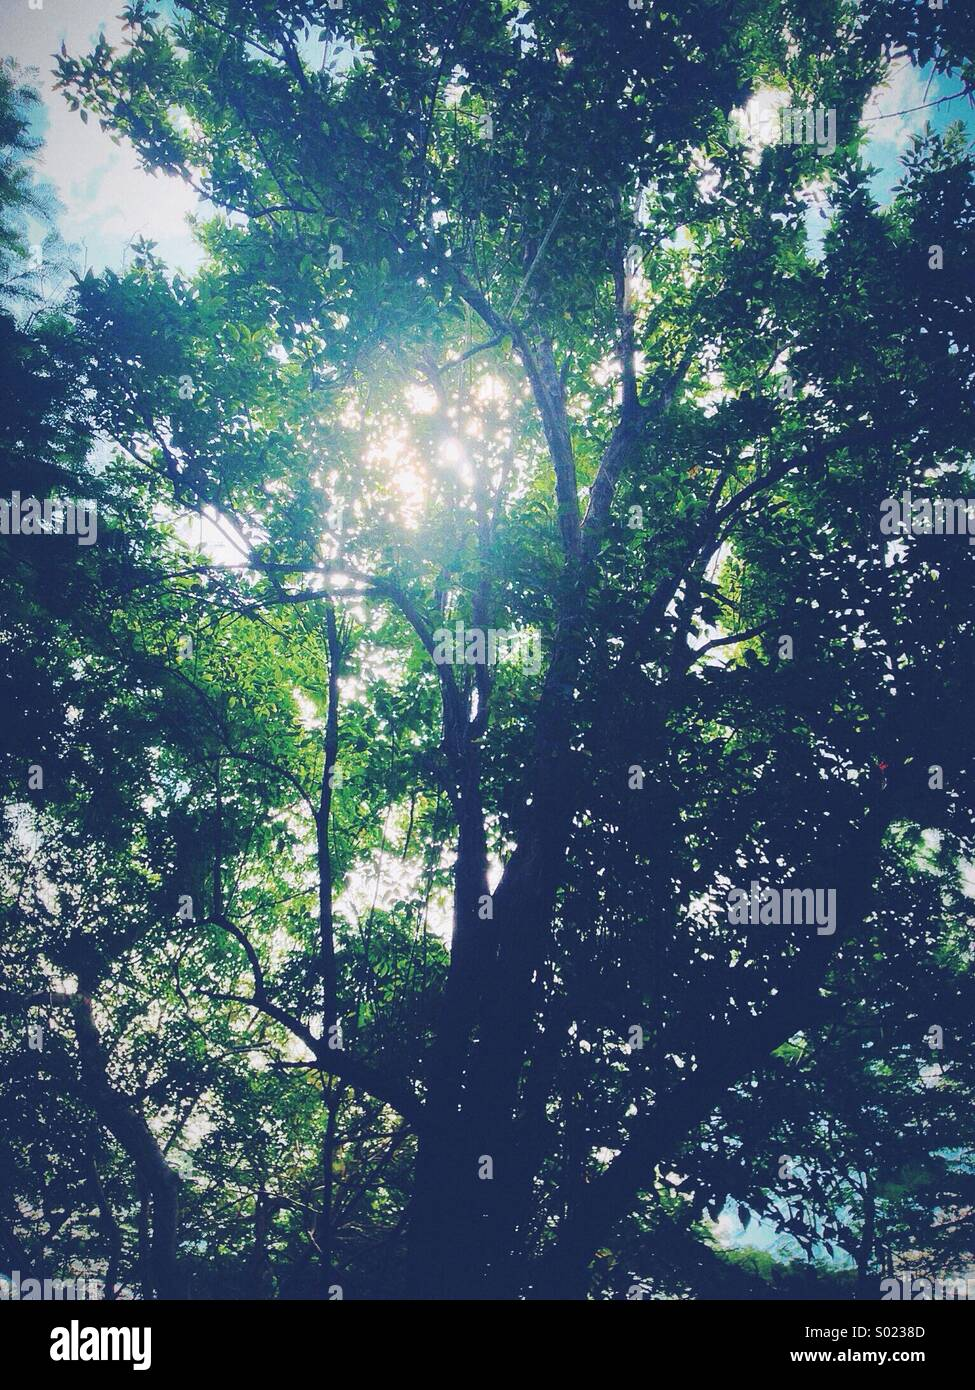 Forest. Barbados, St Lucy. - Stock Image